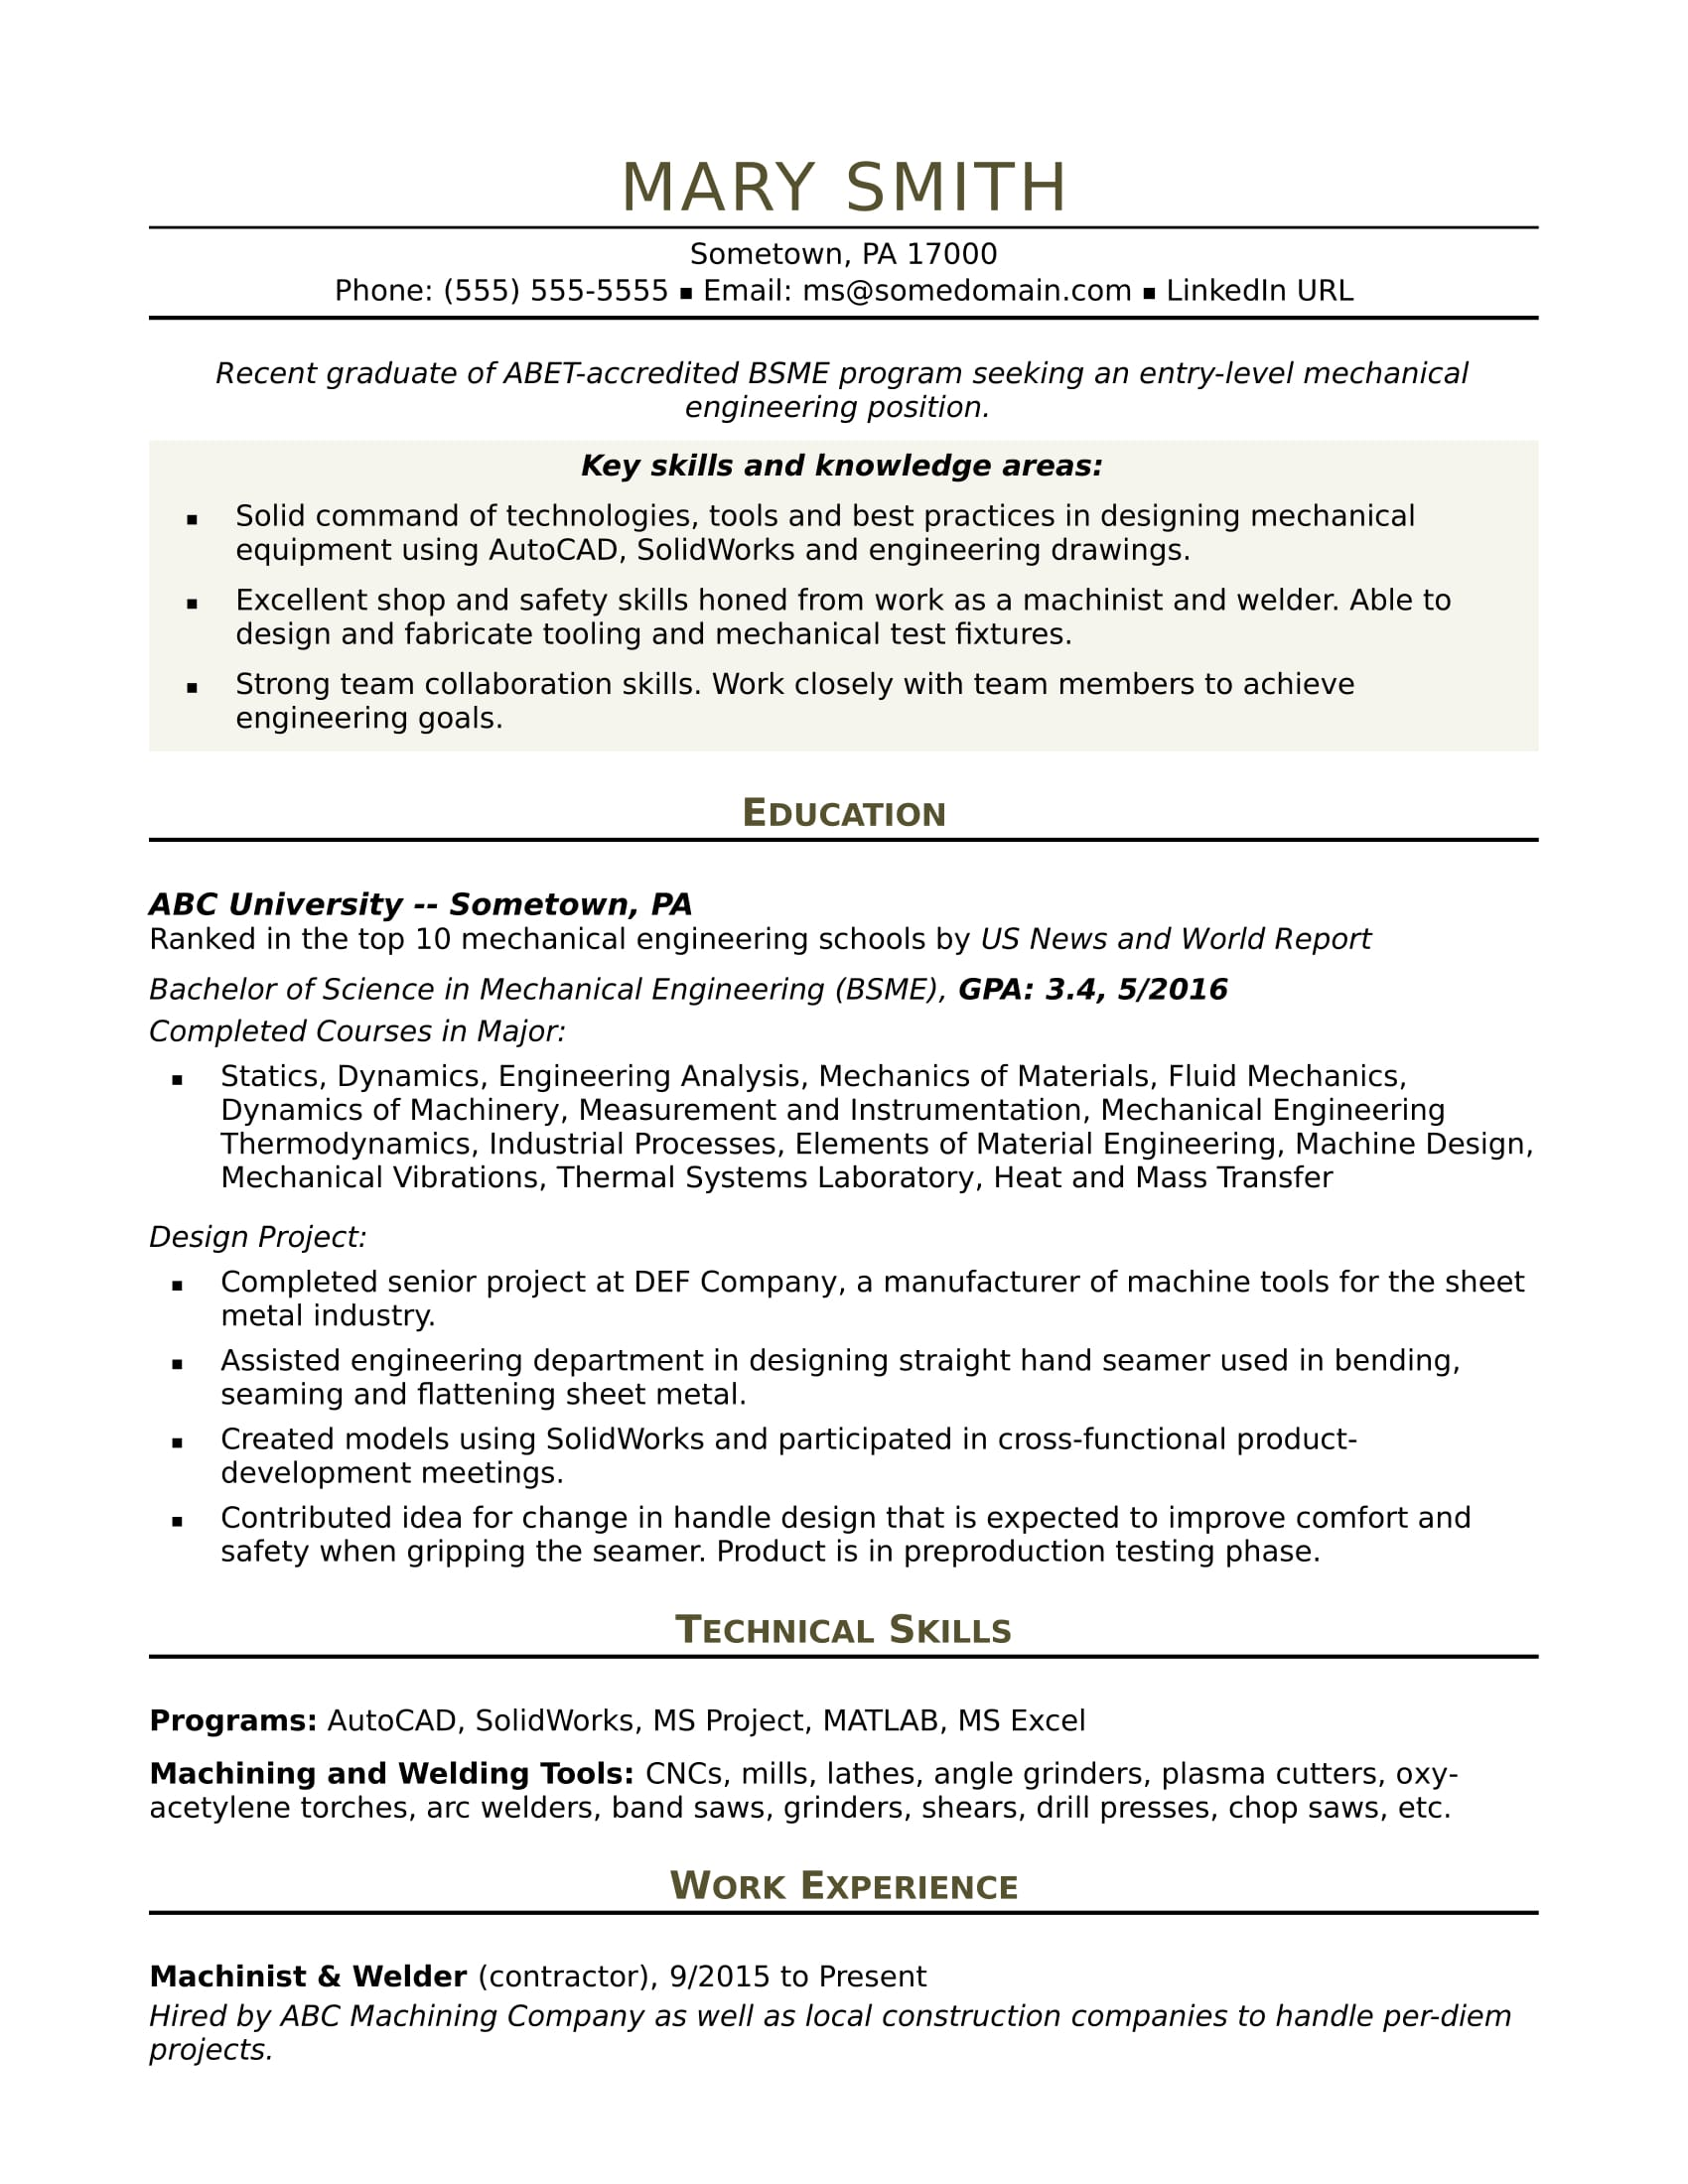 sample resume for an entry level mechanical engineer monster professional template legal Resume Professional Engineer Resume Sample Template